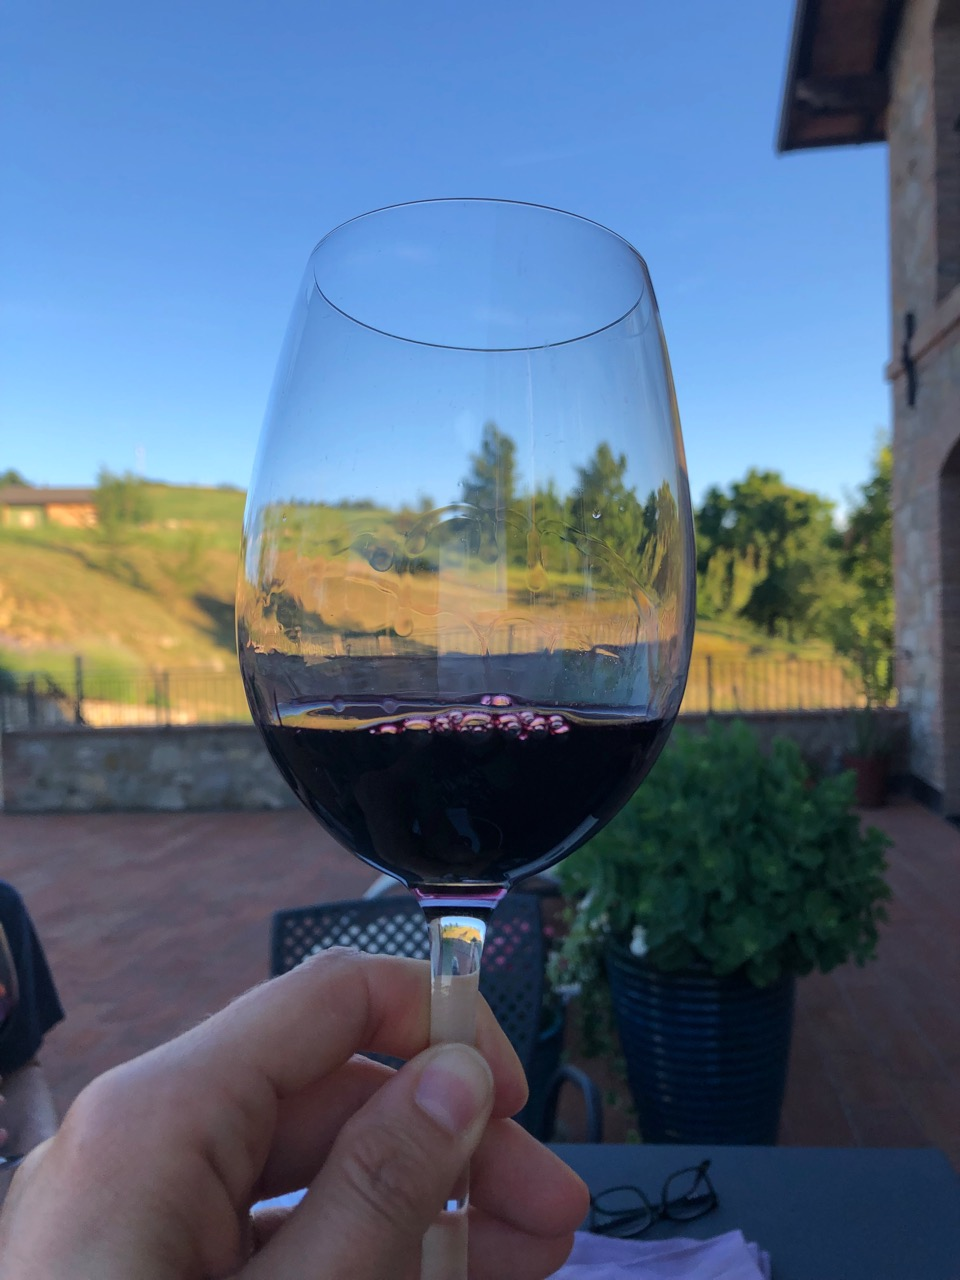 Festasio, a wine that almost vanished due to the popularity of Lambrusco grapes taking over the landscape. (Image provided by Rebecca Margolis.)